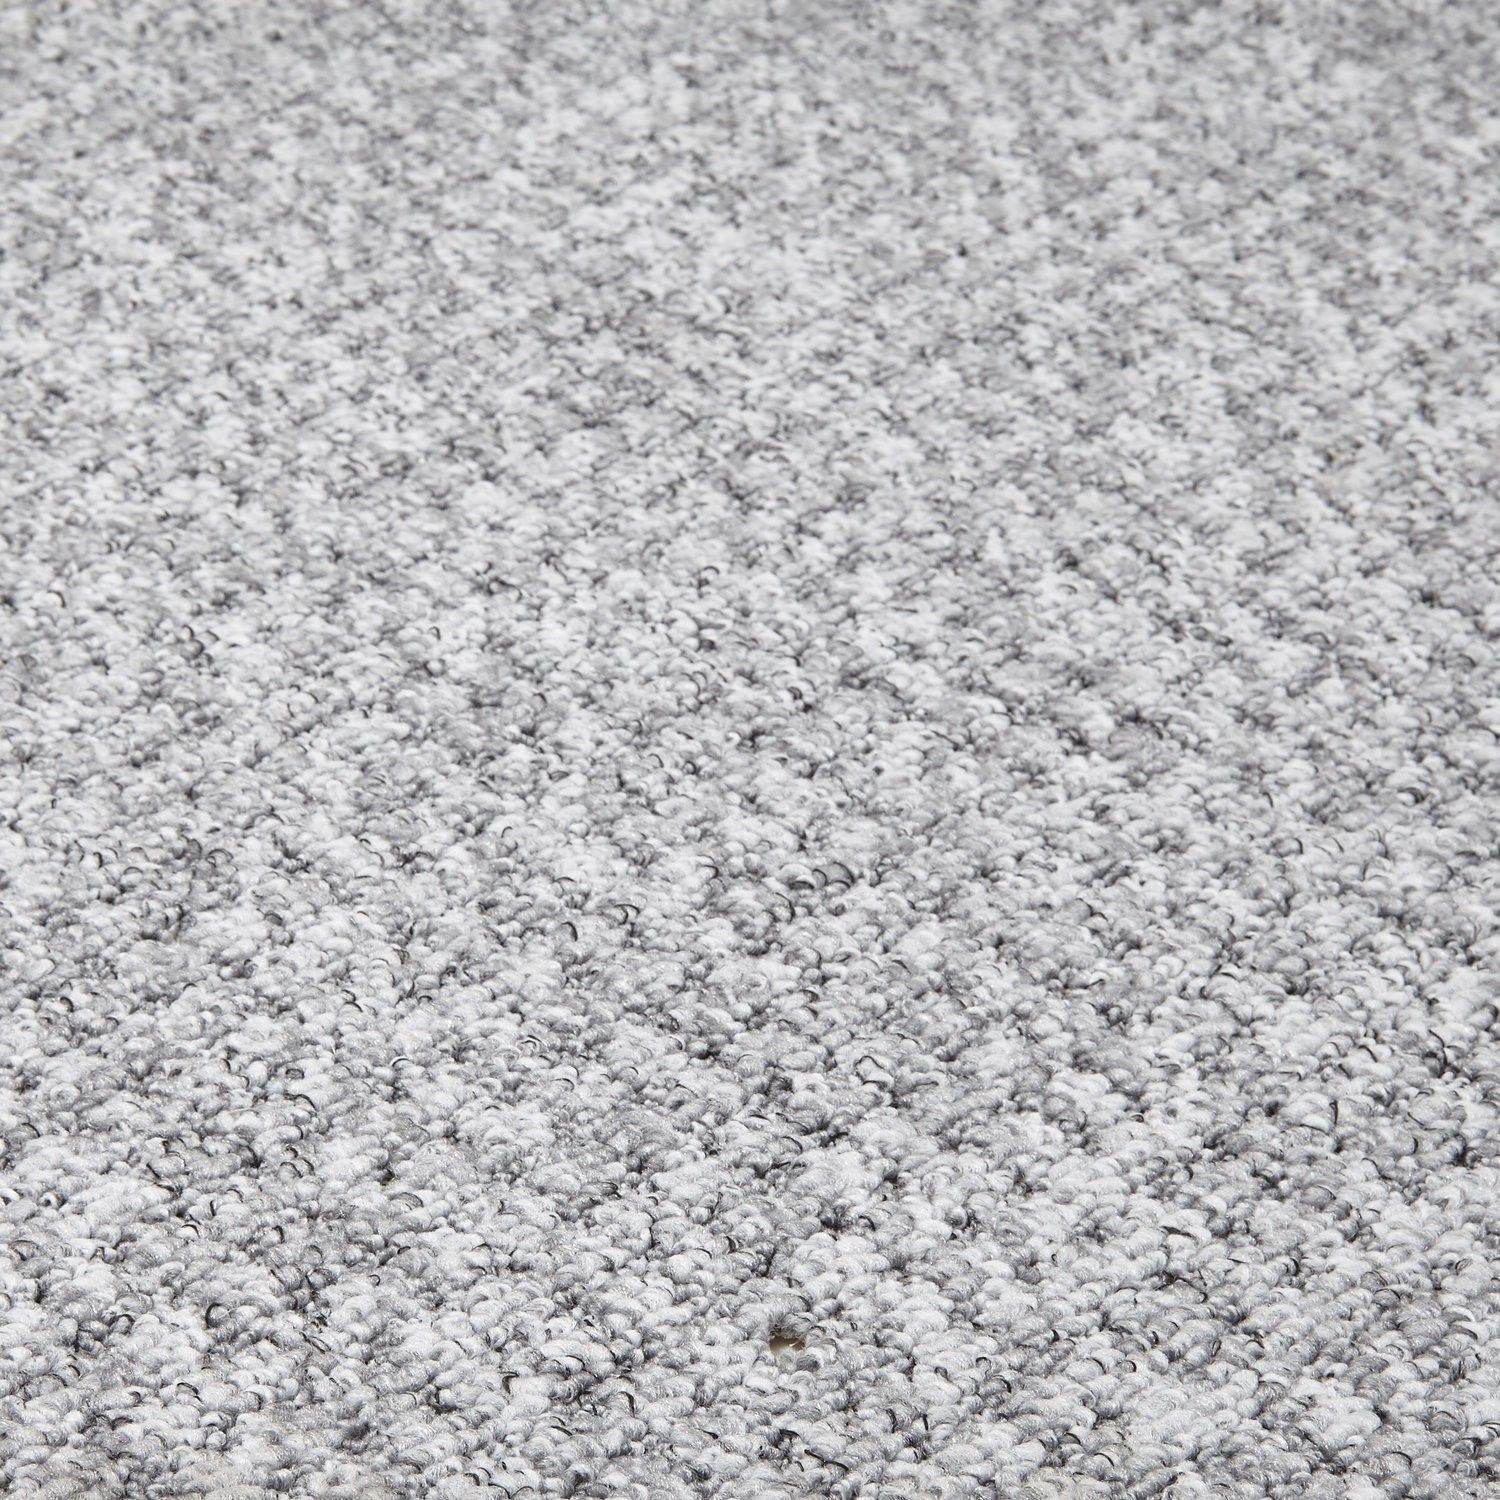 Tangier Berber Textured Carpet Carpetright Bedroom